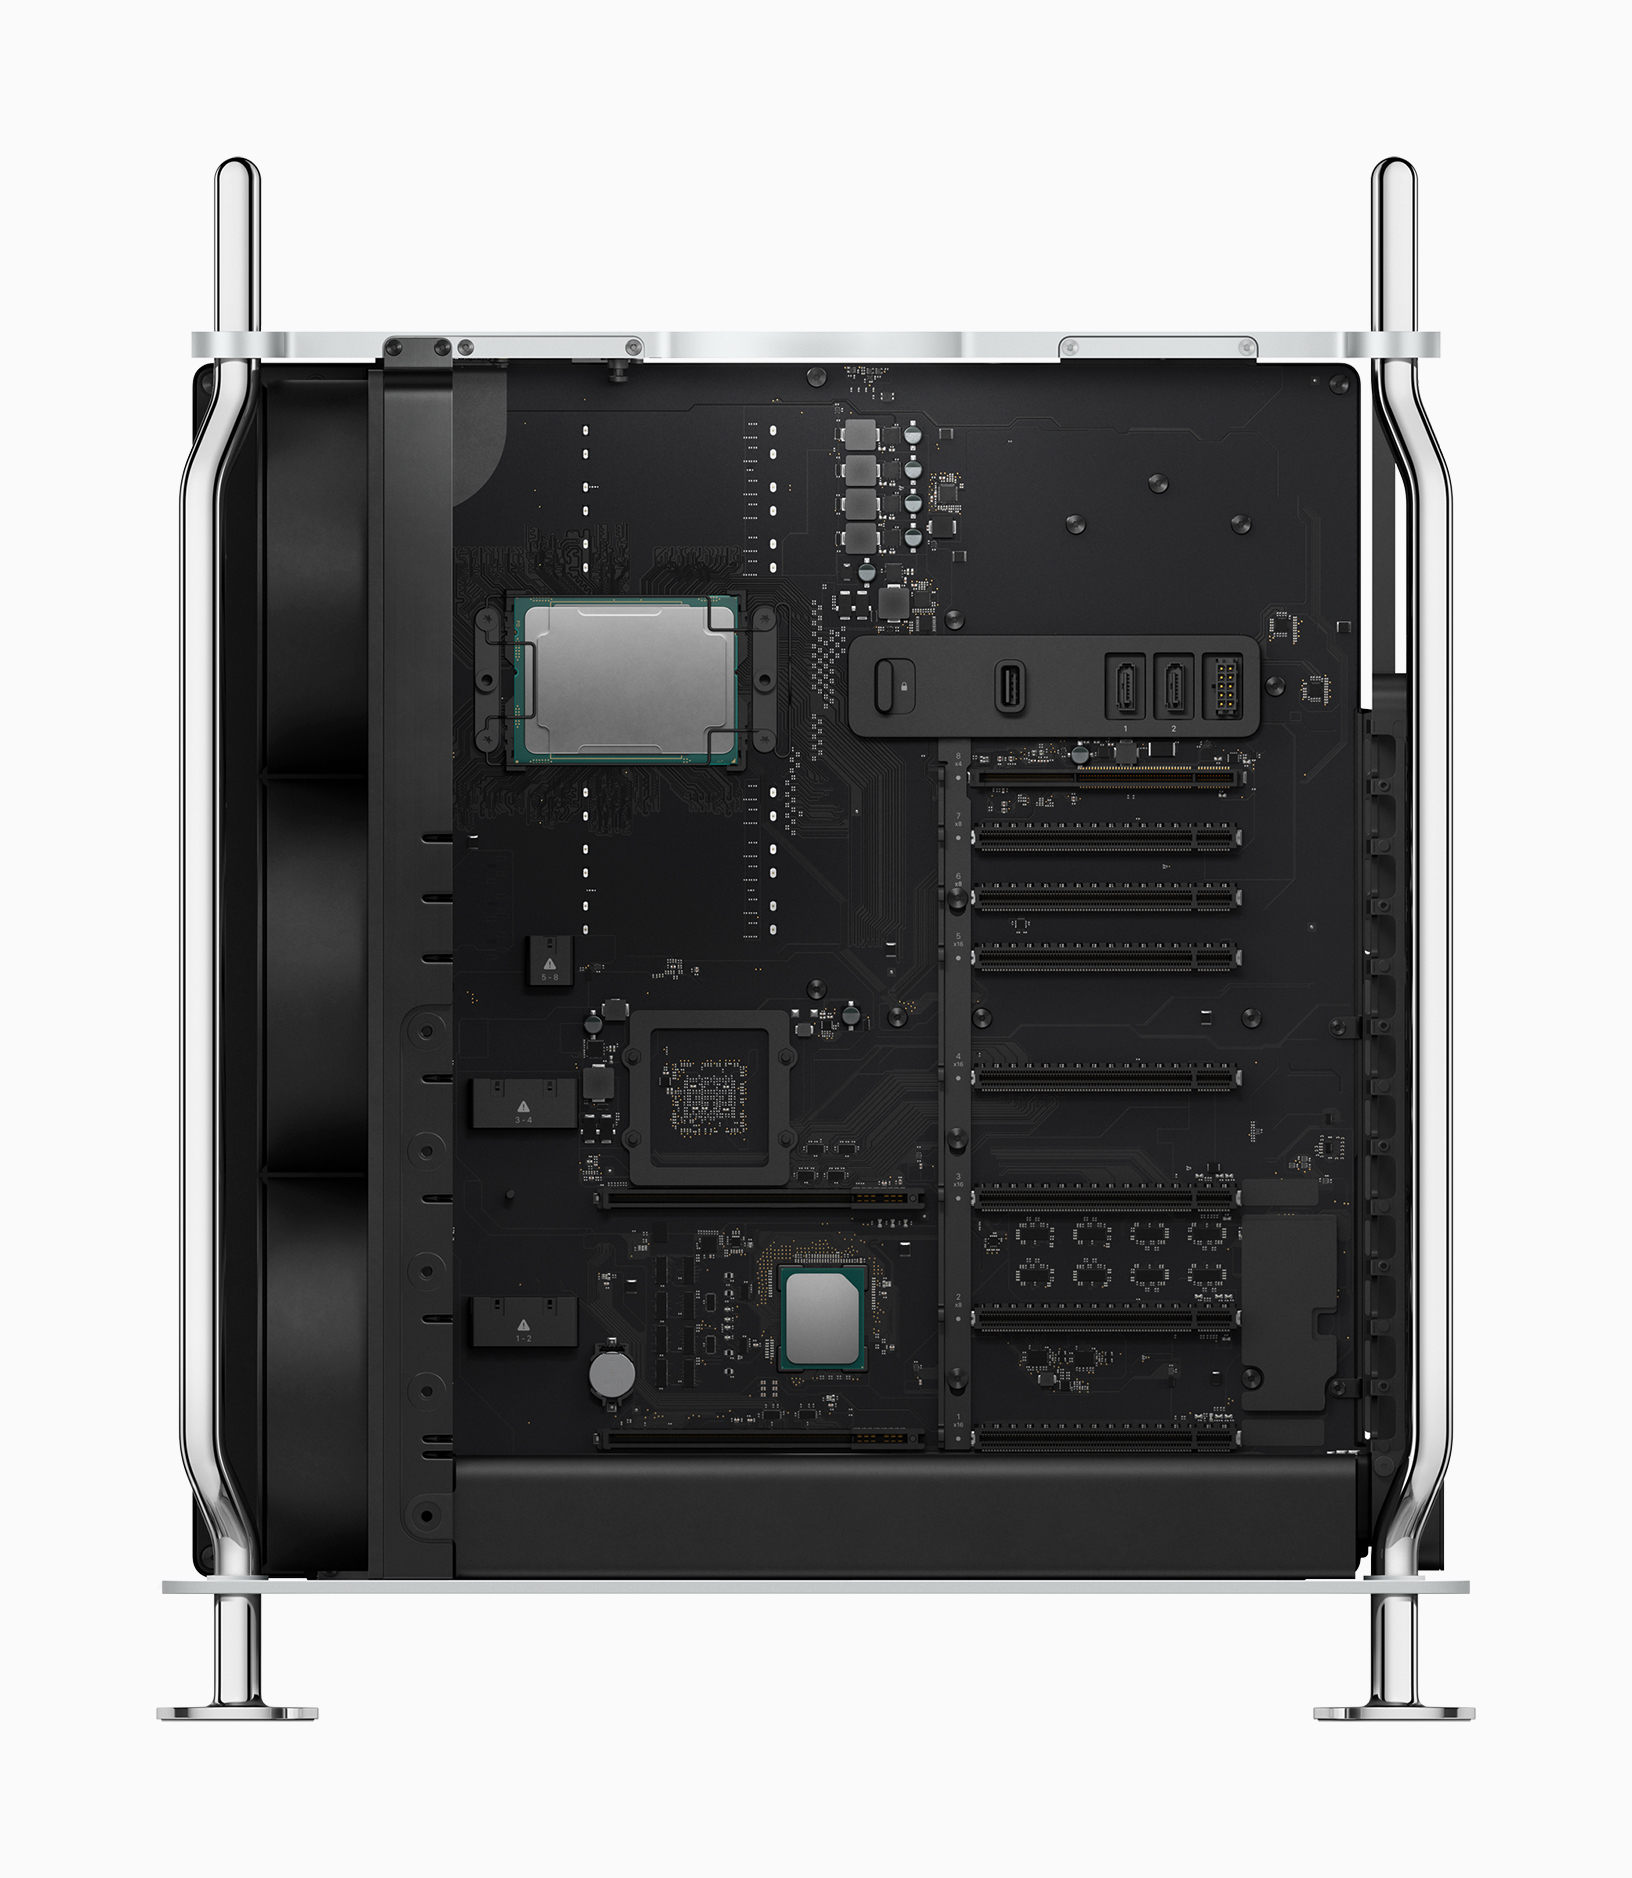 apple mac-pro-display-pro mac-pro-internal 060319